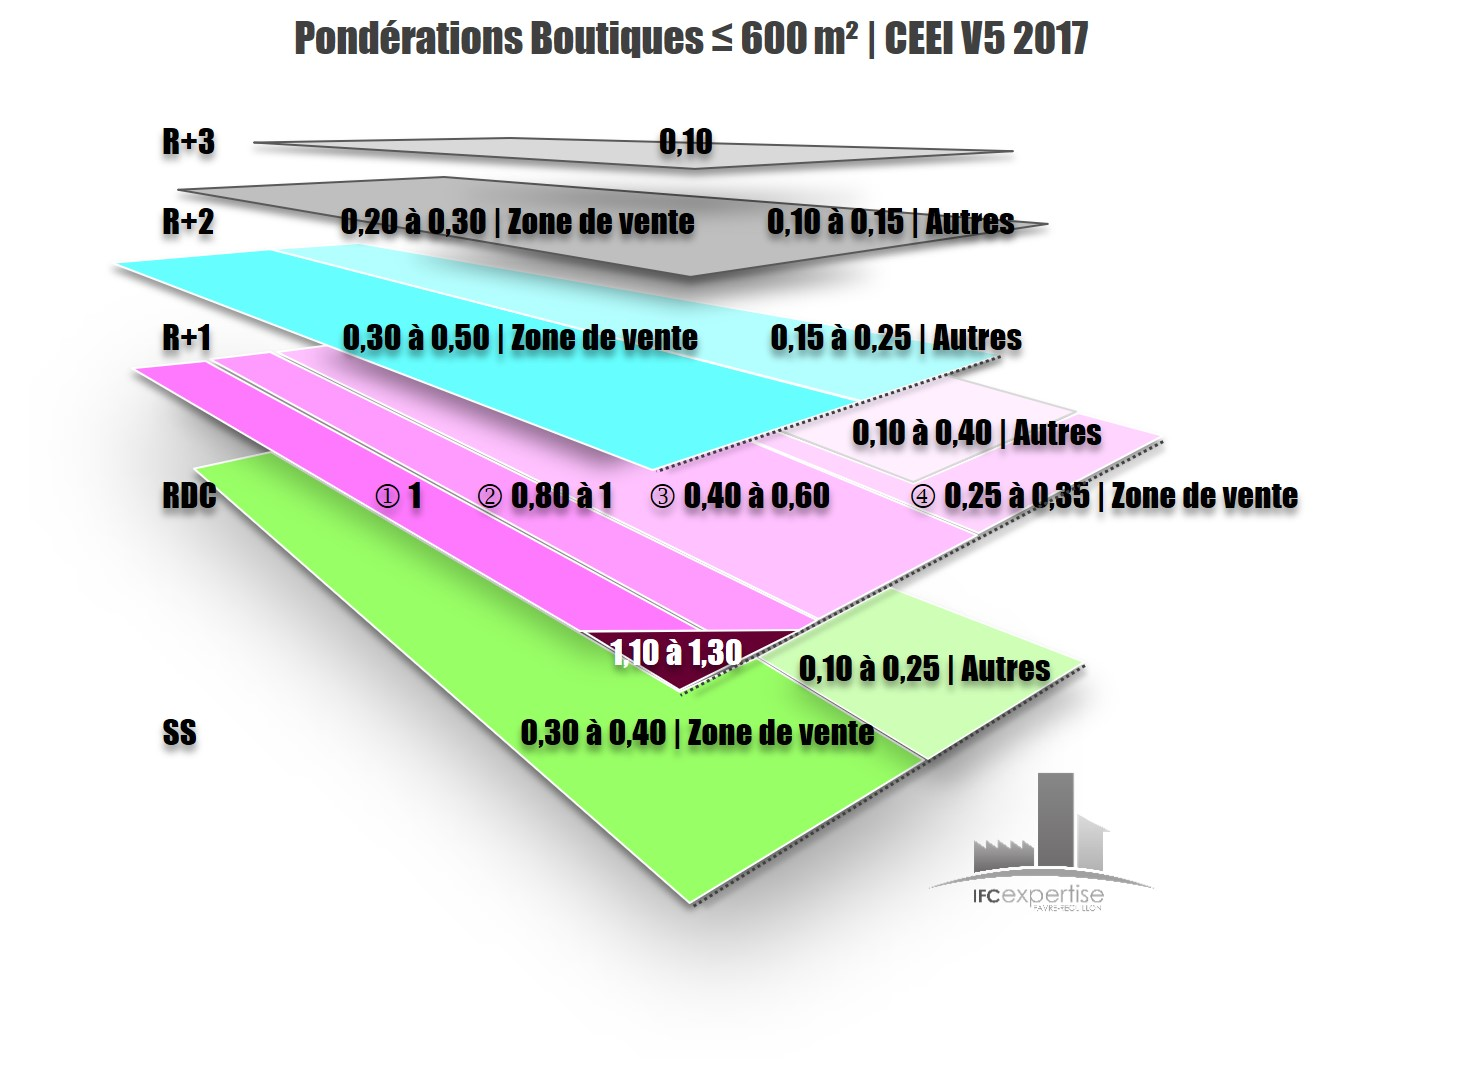 PONDERATIONS BOUTIQUES CHARTE EXPERTISE EVALUATION IMMOBILIERE IFC EXPERTISE 2